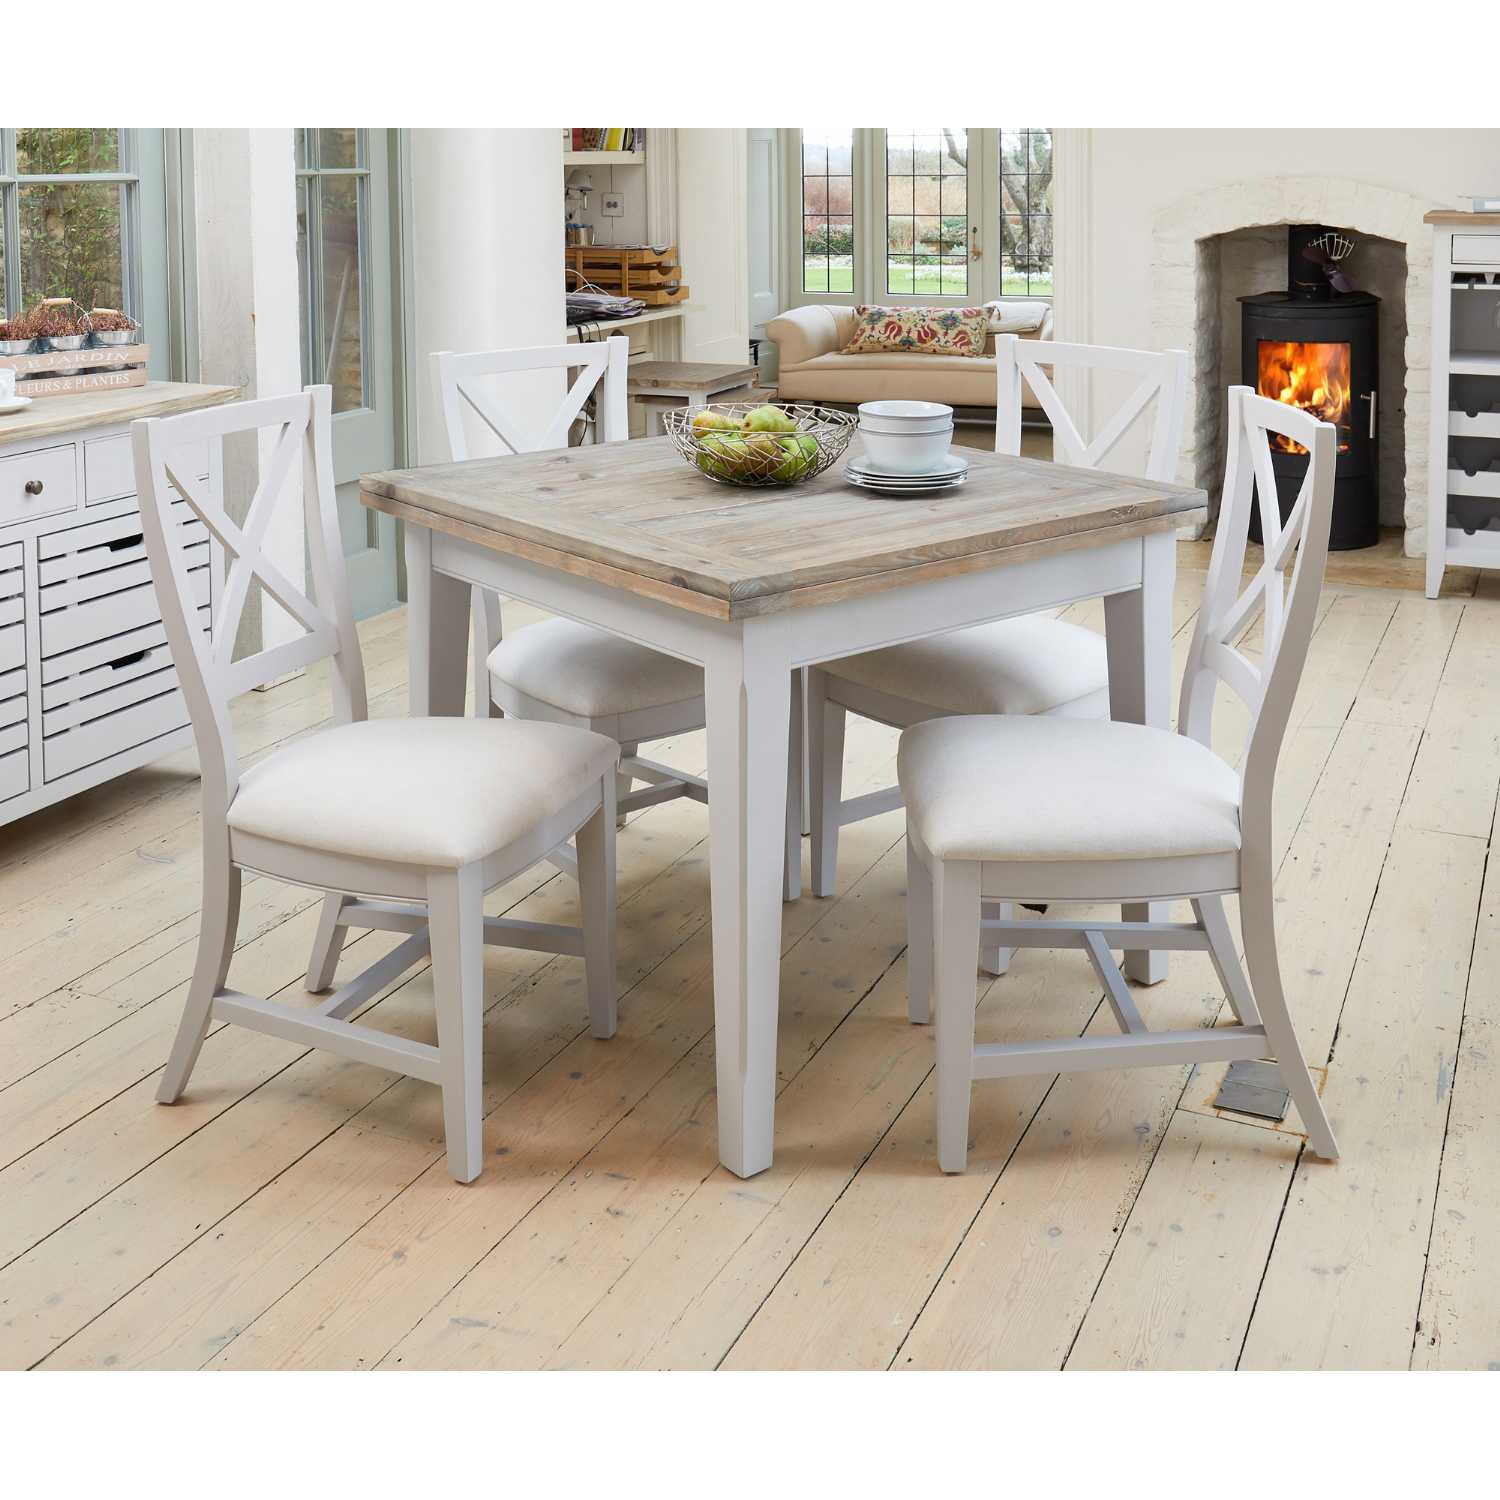 Table Carrée Cuisine: Grey Painted 95cm Square Extending Kitchen Dining Table